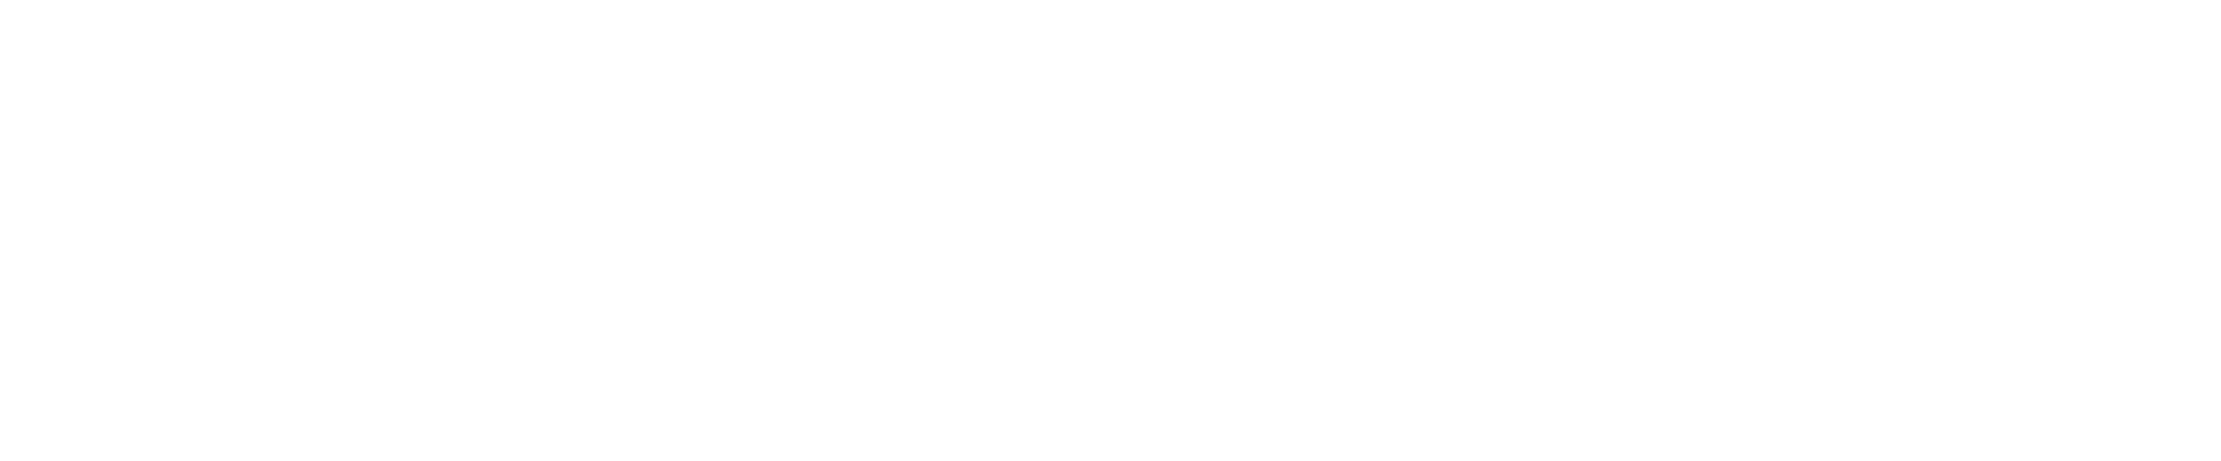 Logo for Santa Barbara Beach & Golf Resort